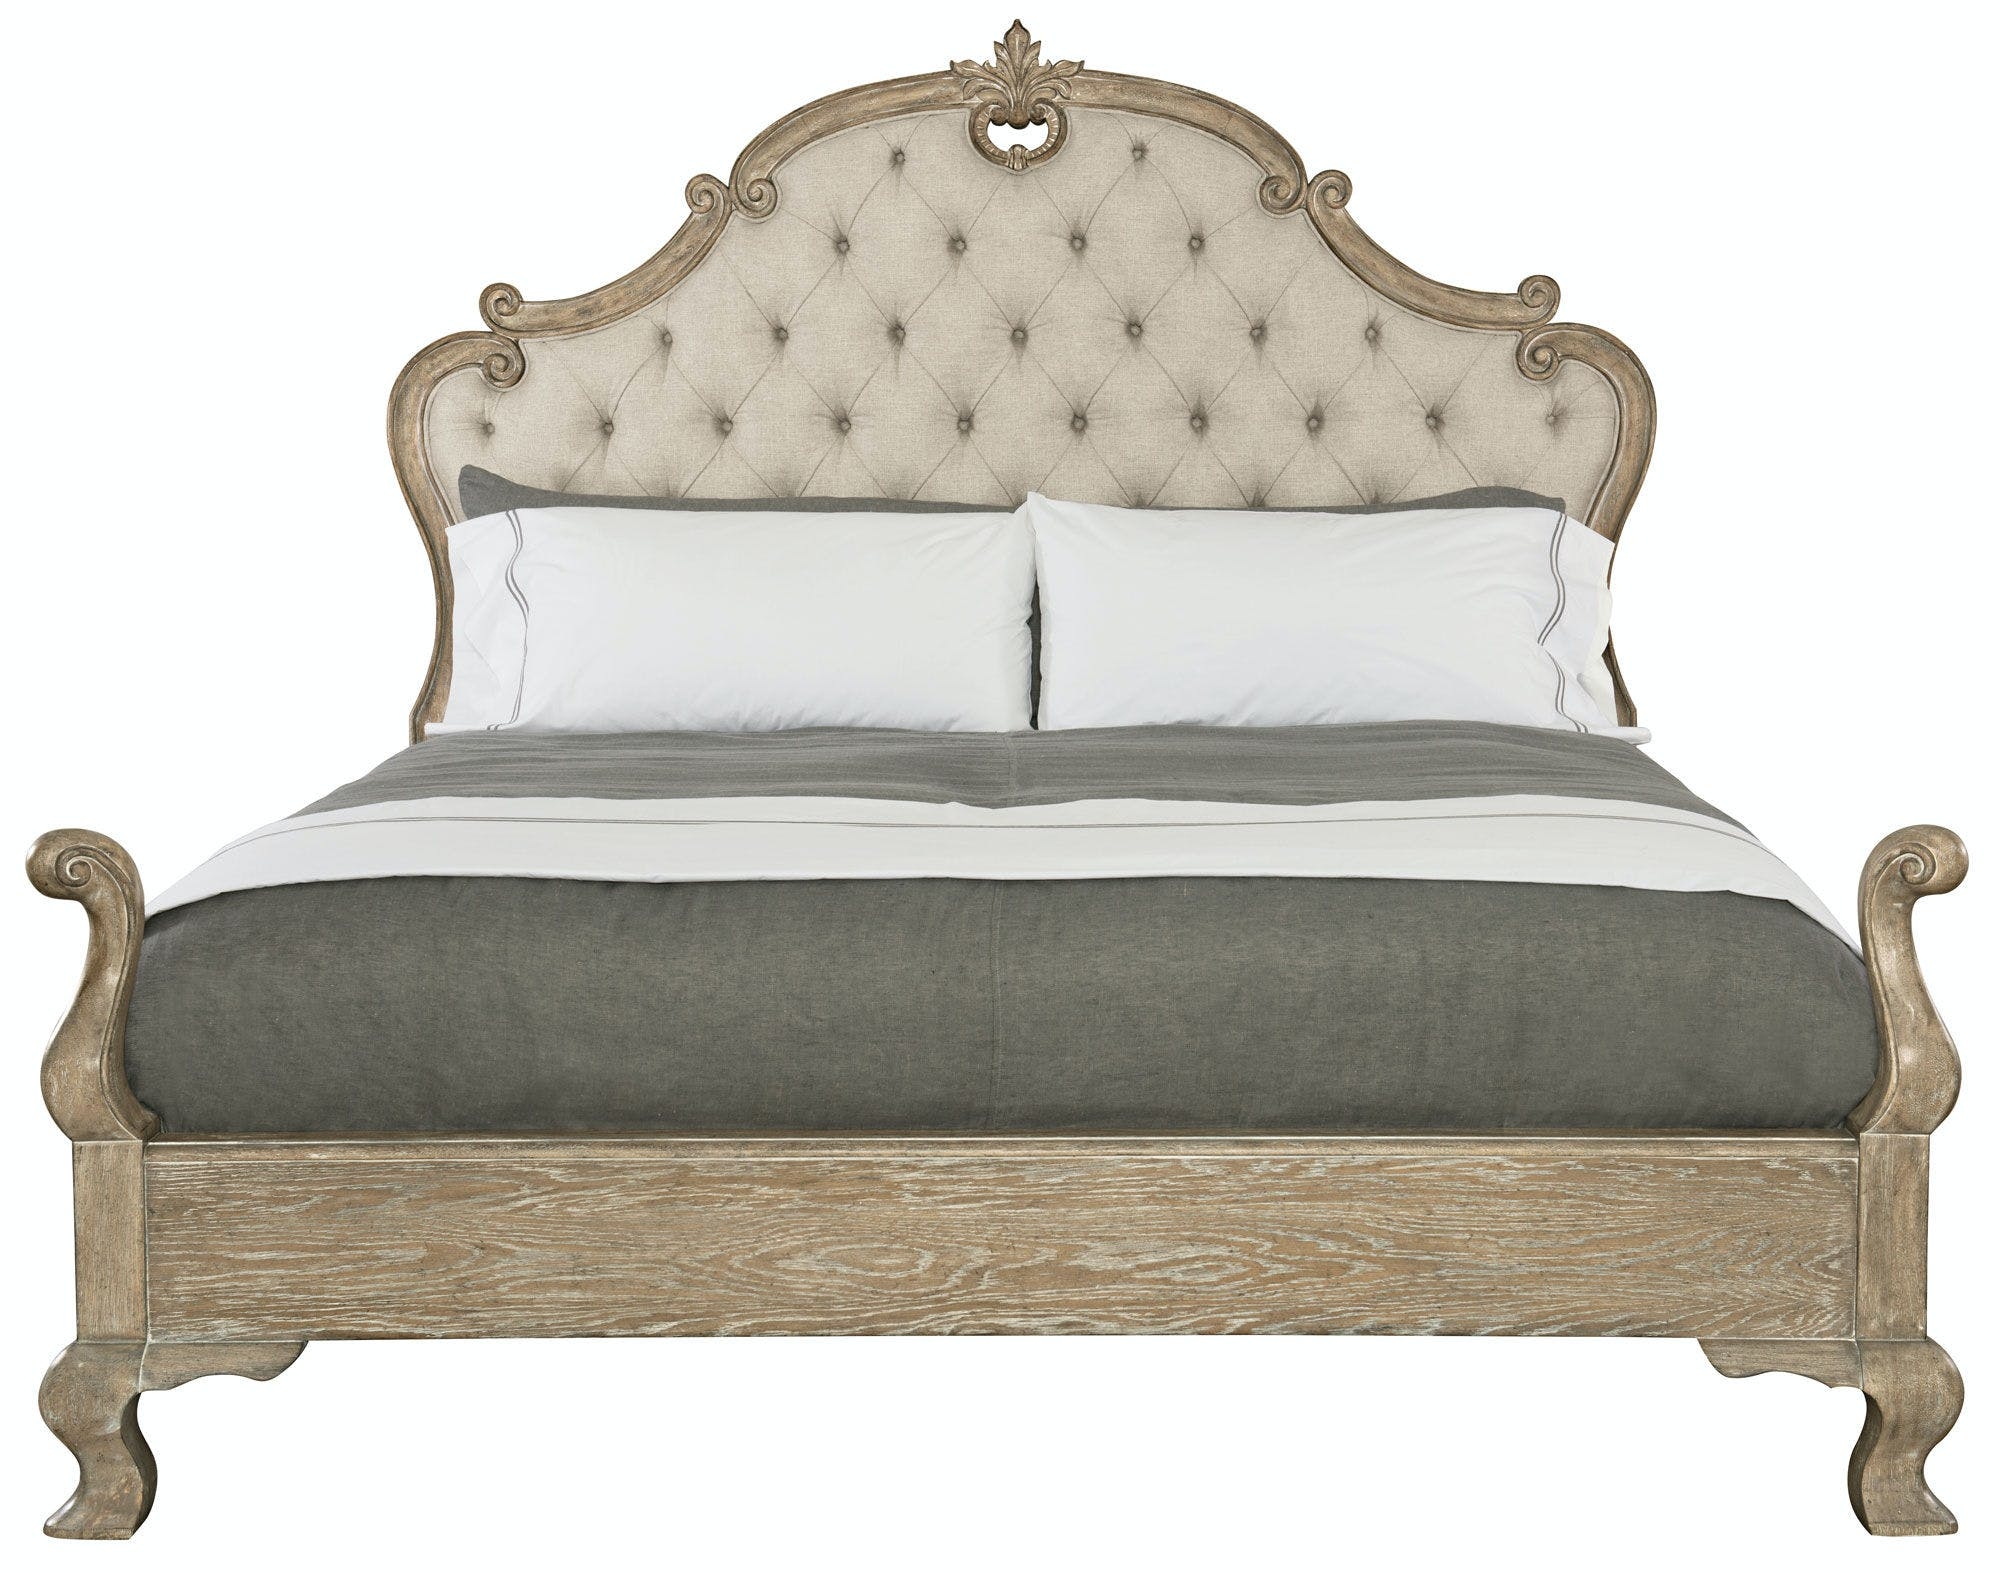 Upholstered Panel King Bed Headboard Be370h66